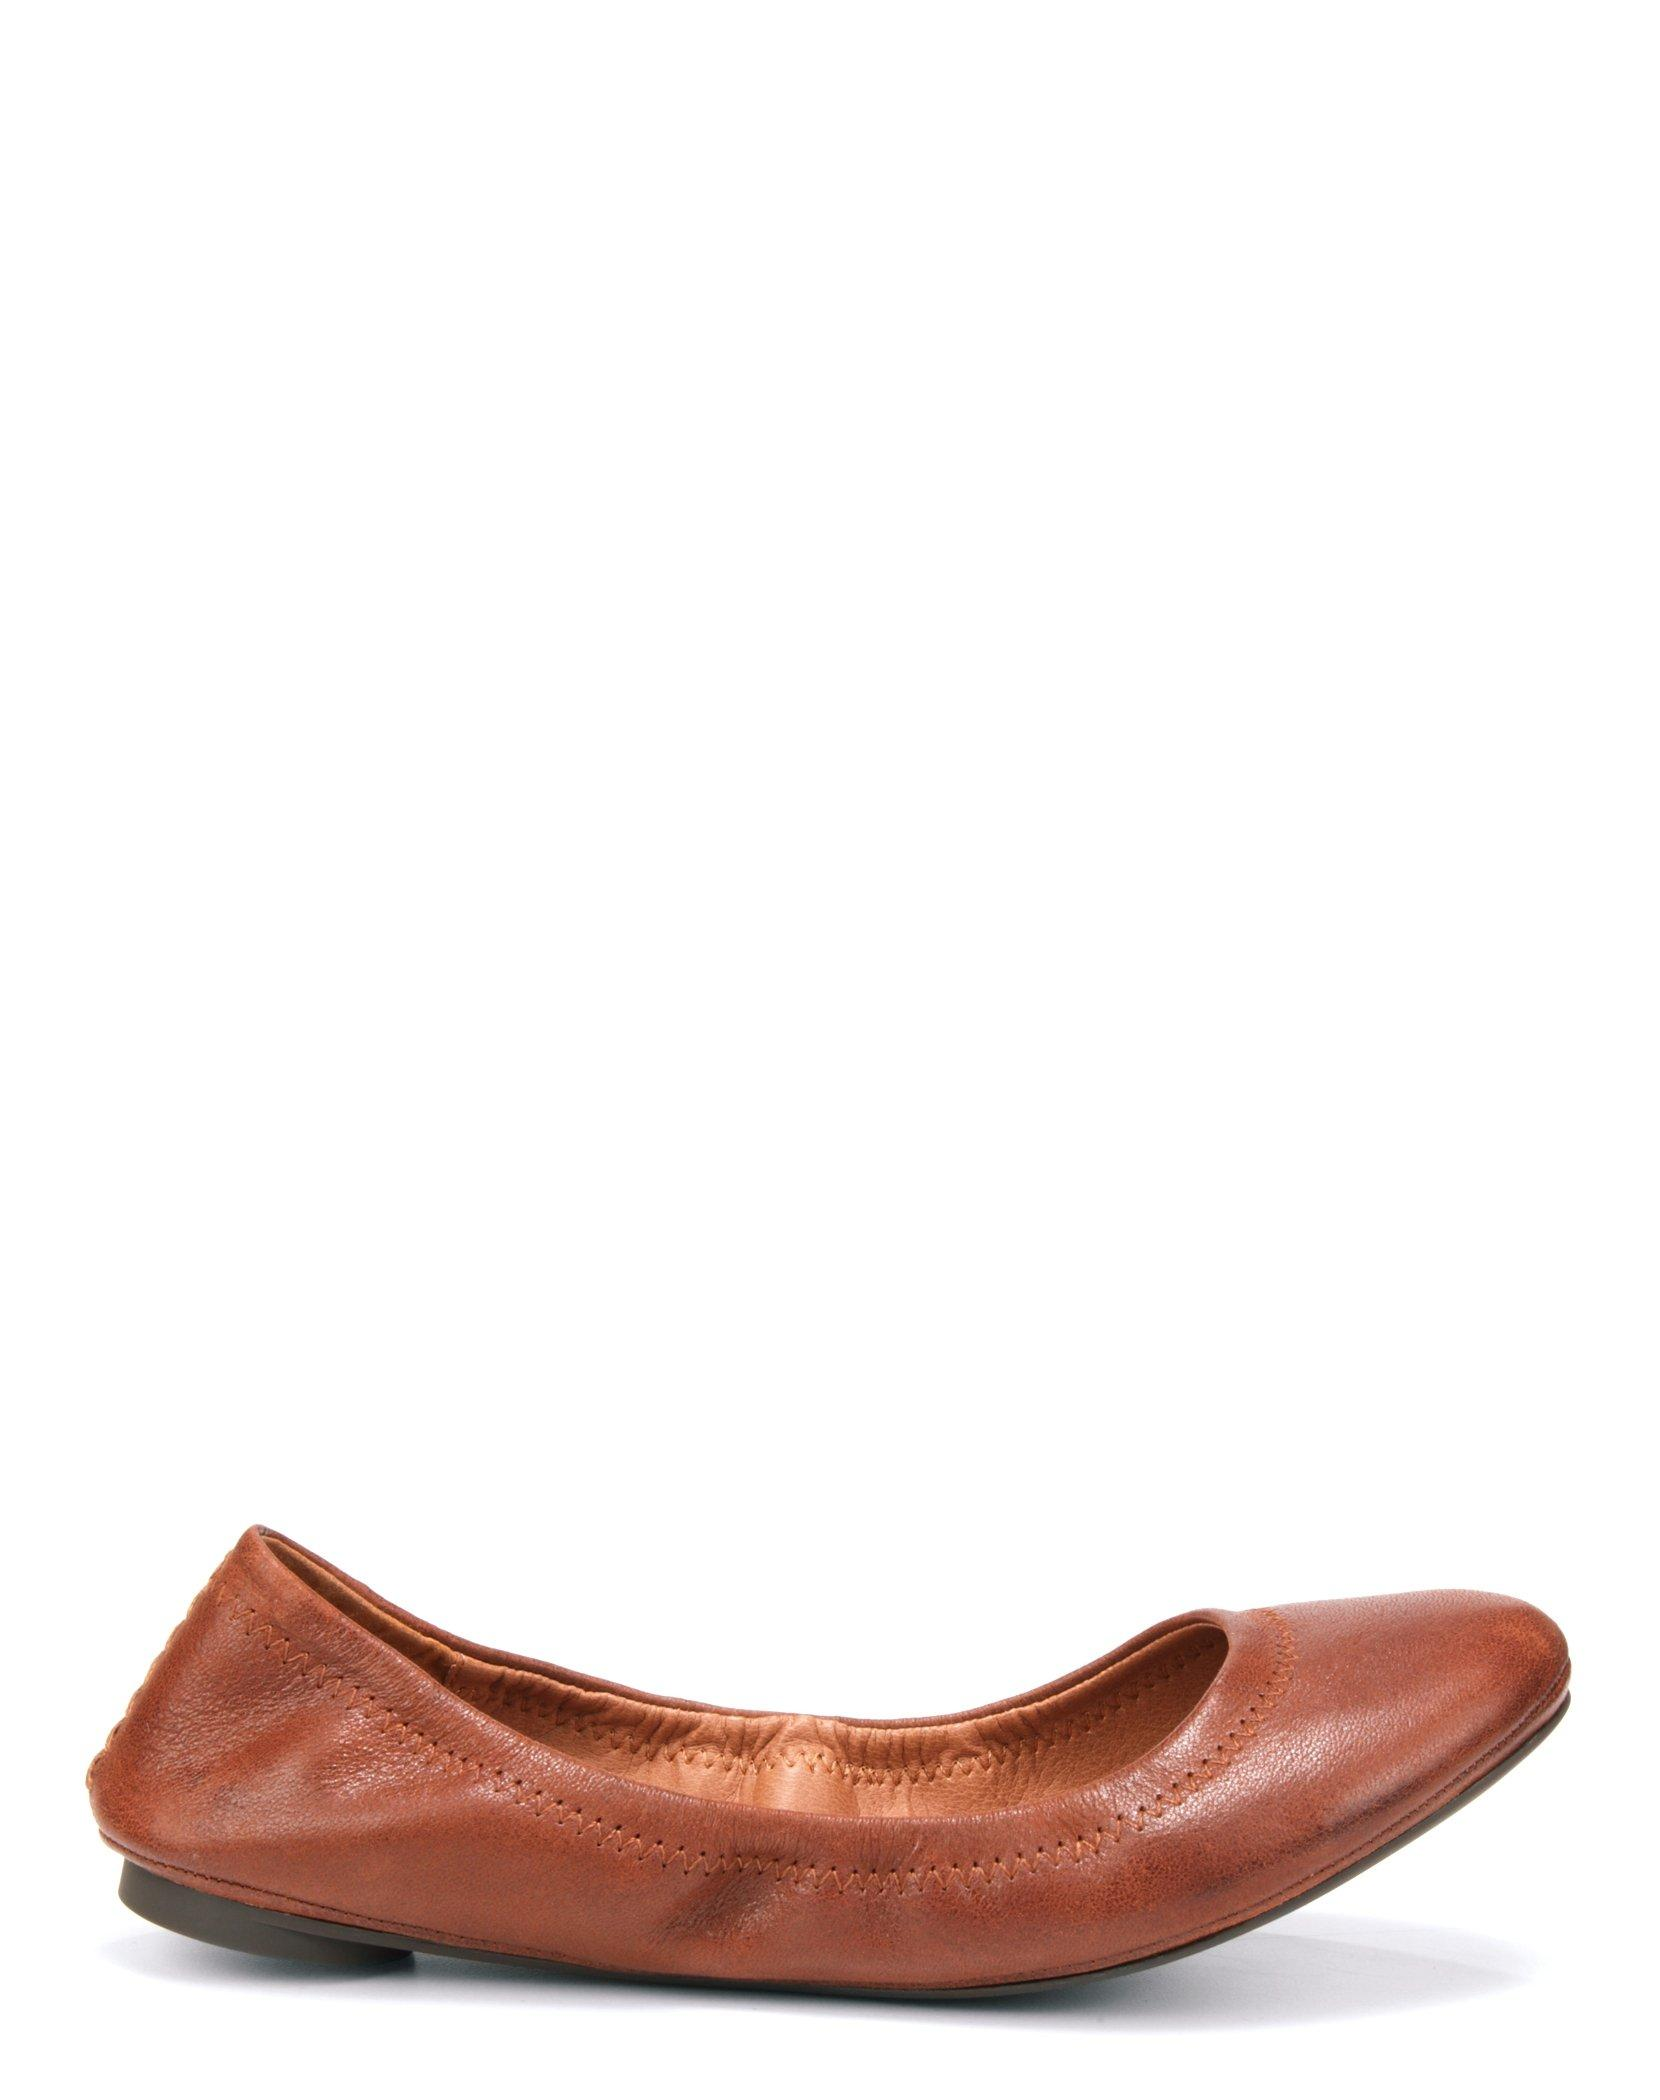 EMMIE LEATHER FLATS, image 2